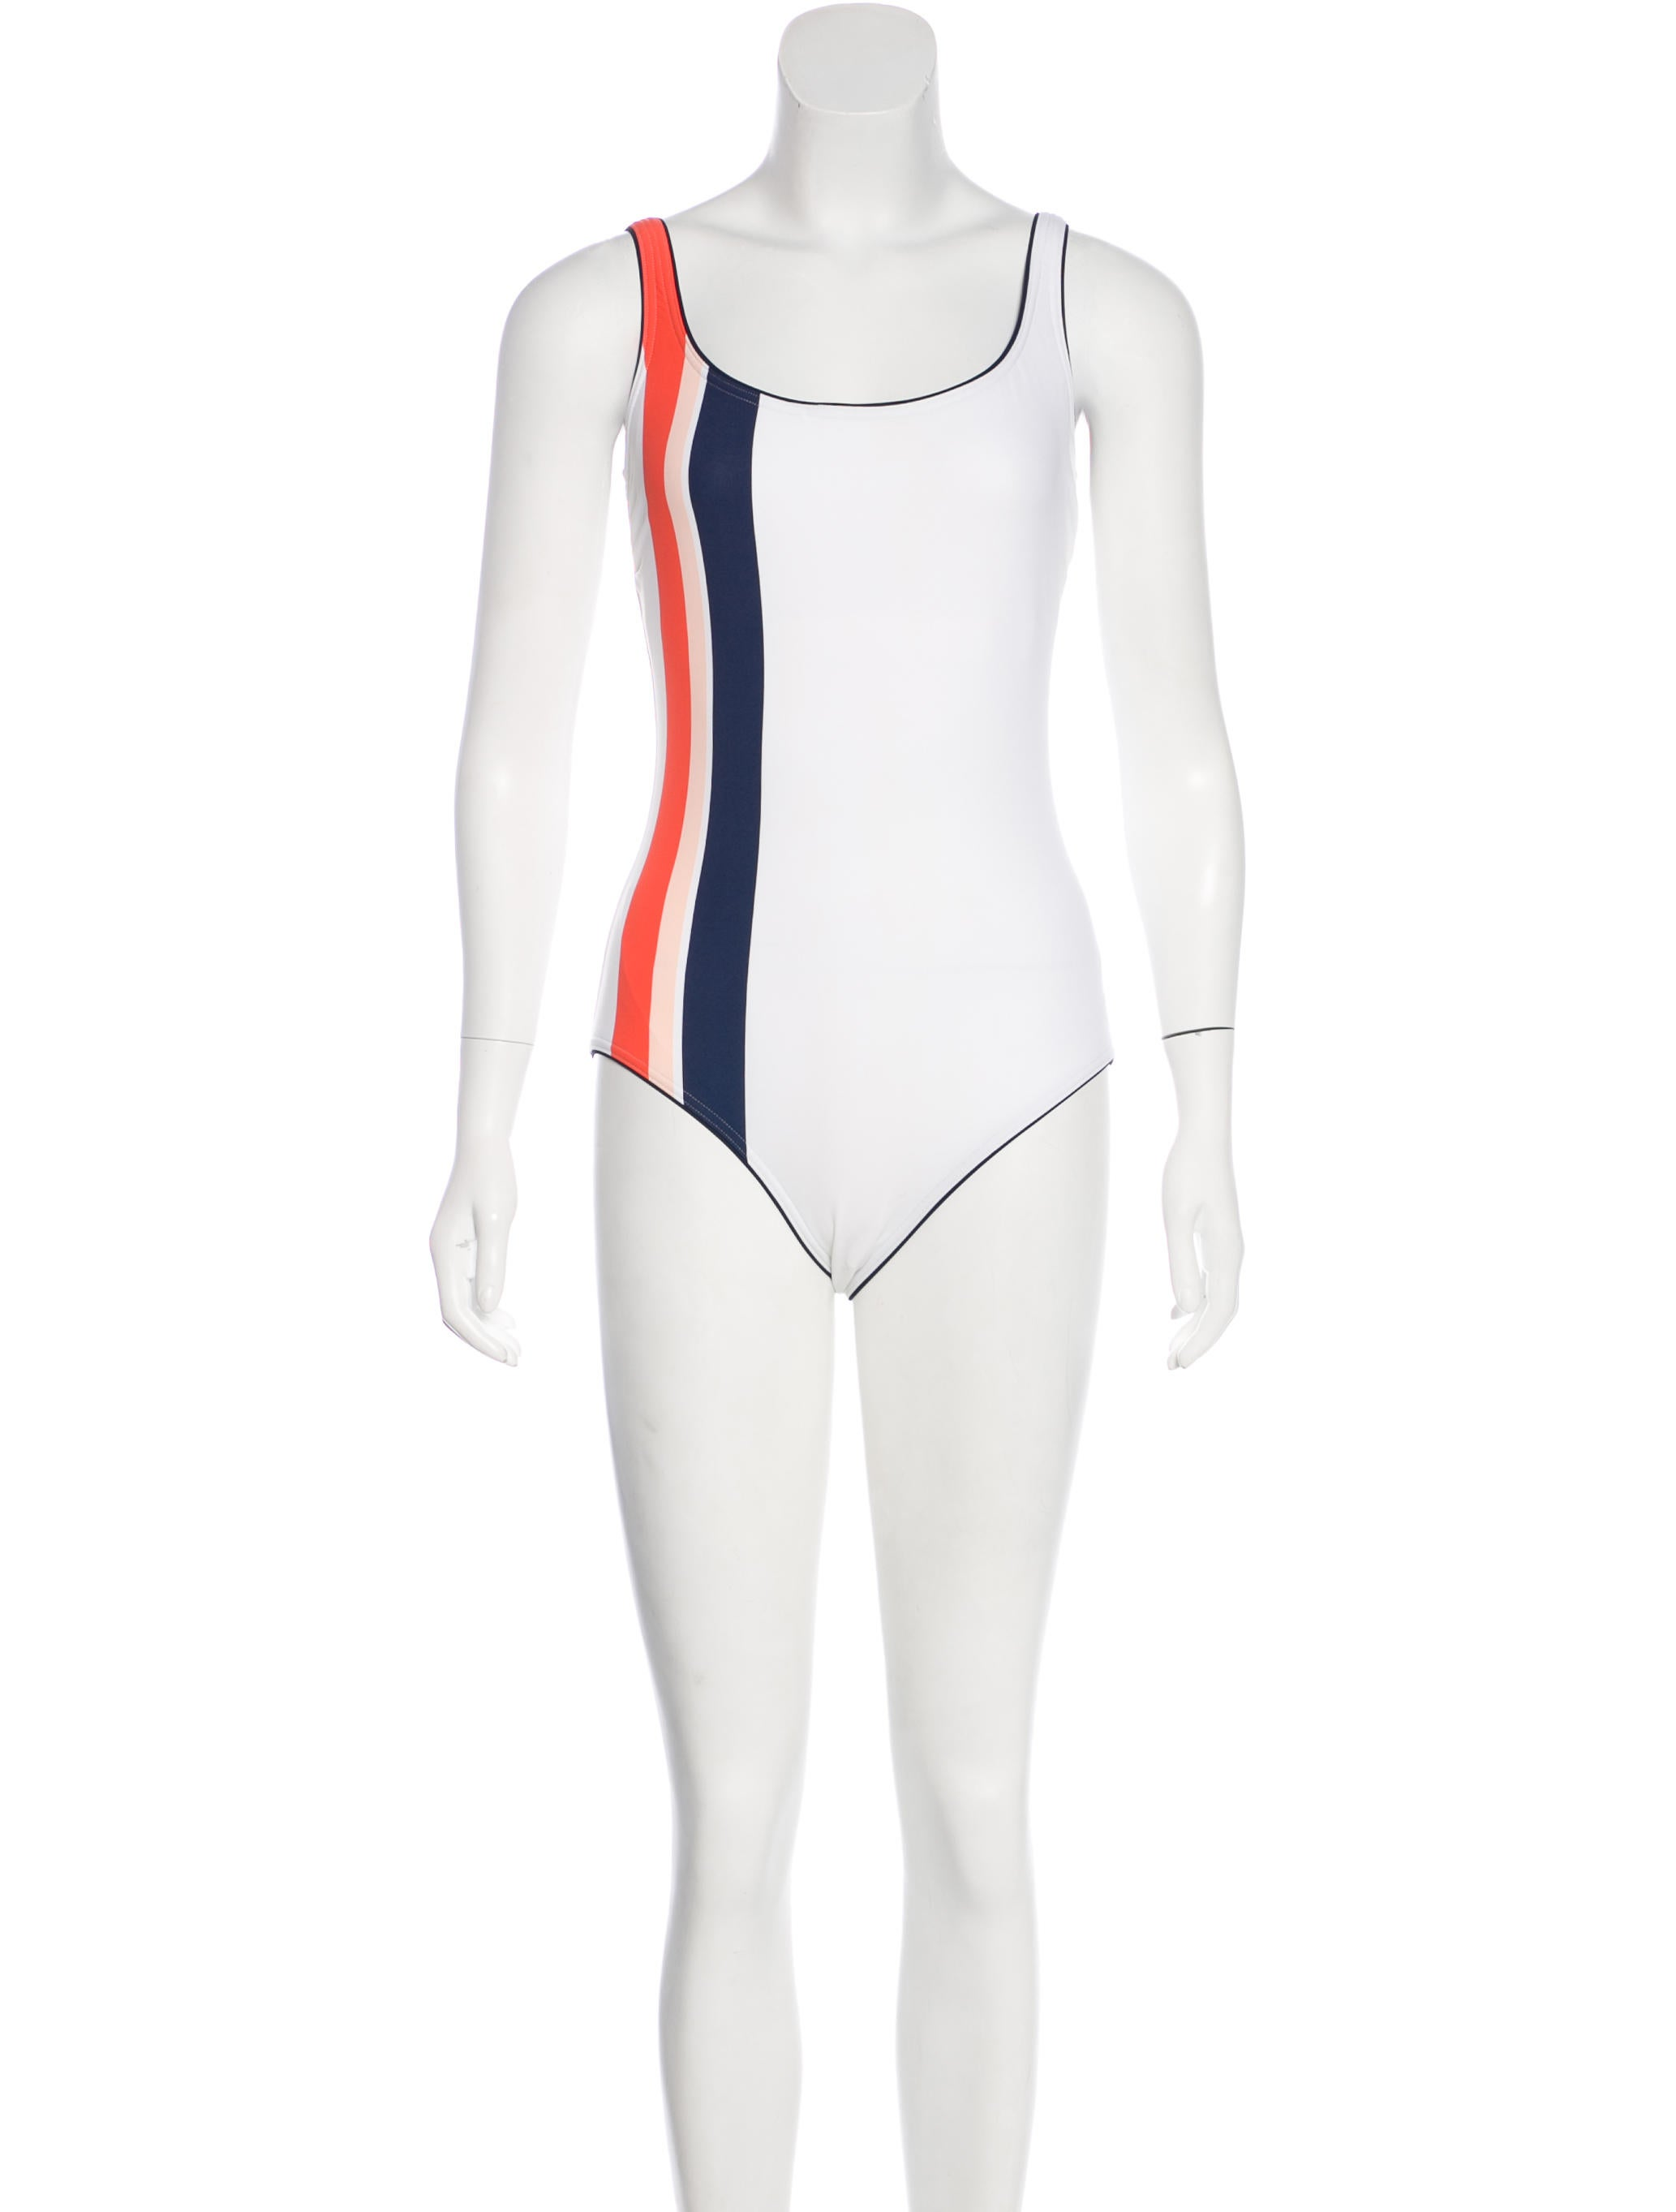 7169be11b01 Tory Burch Striped One-Piece Swimsuit w/ Tags - Clothing - WTO118976 ...